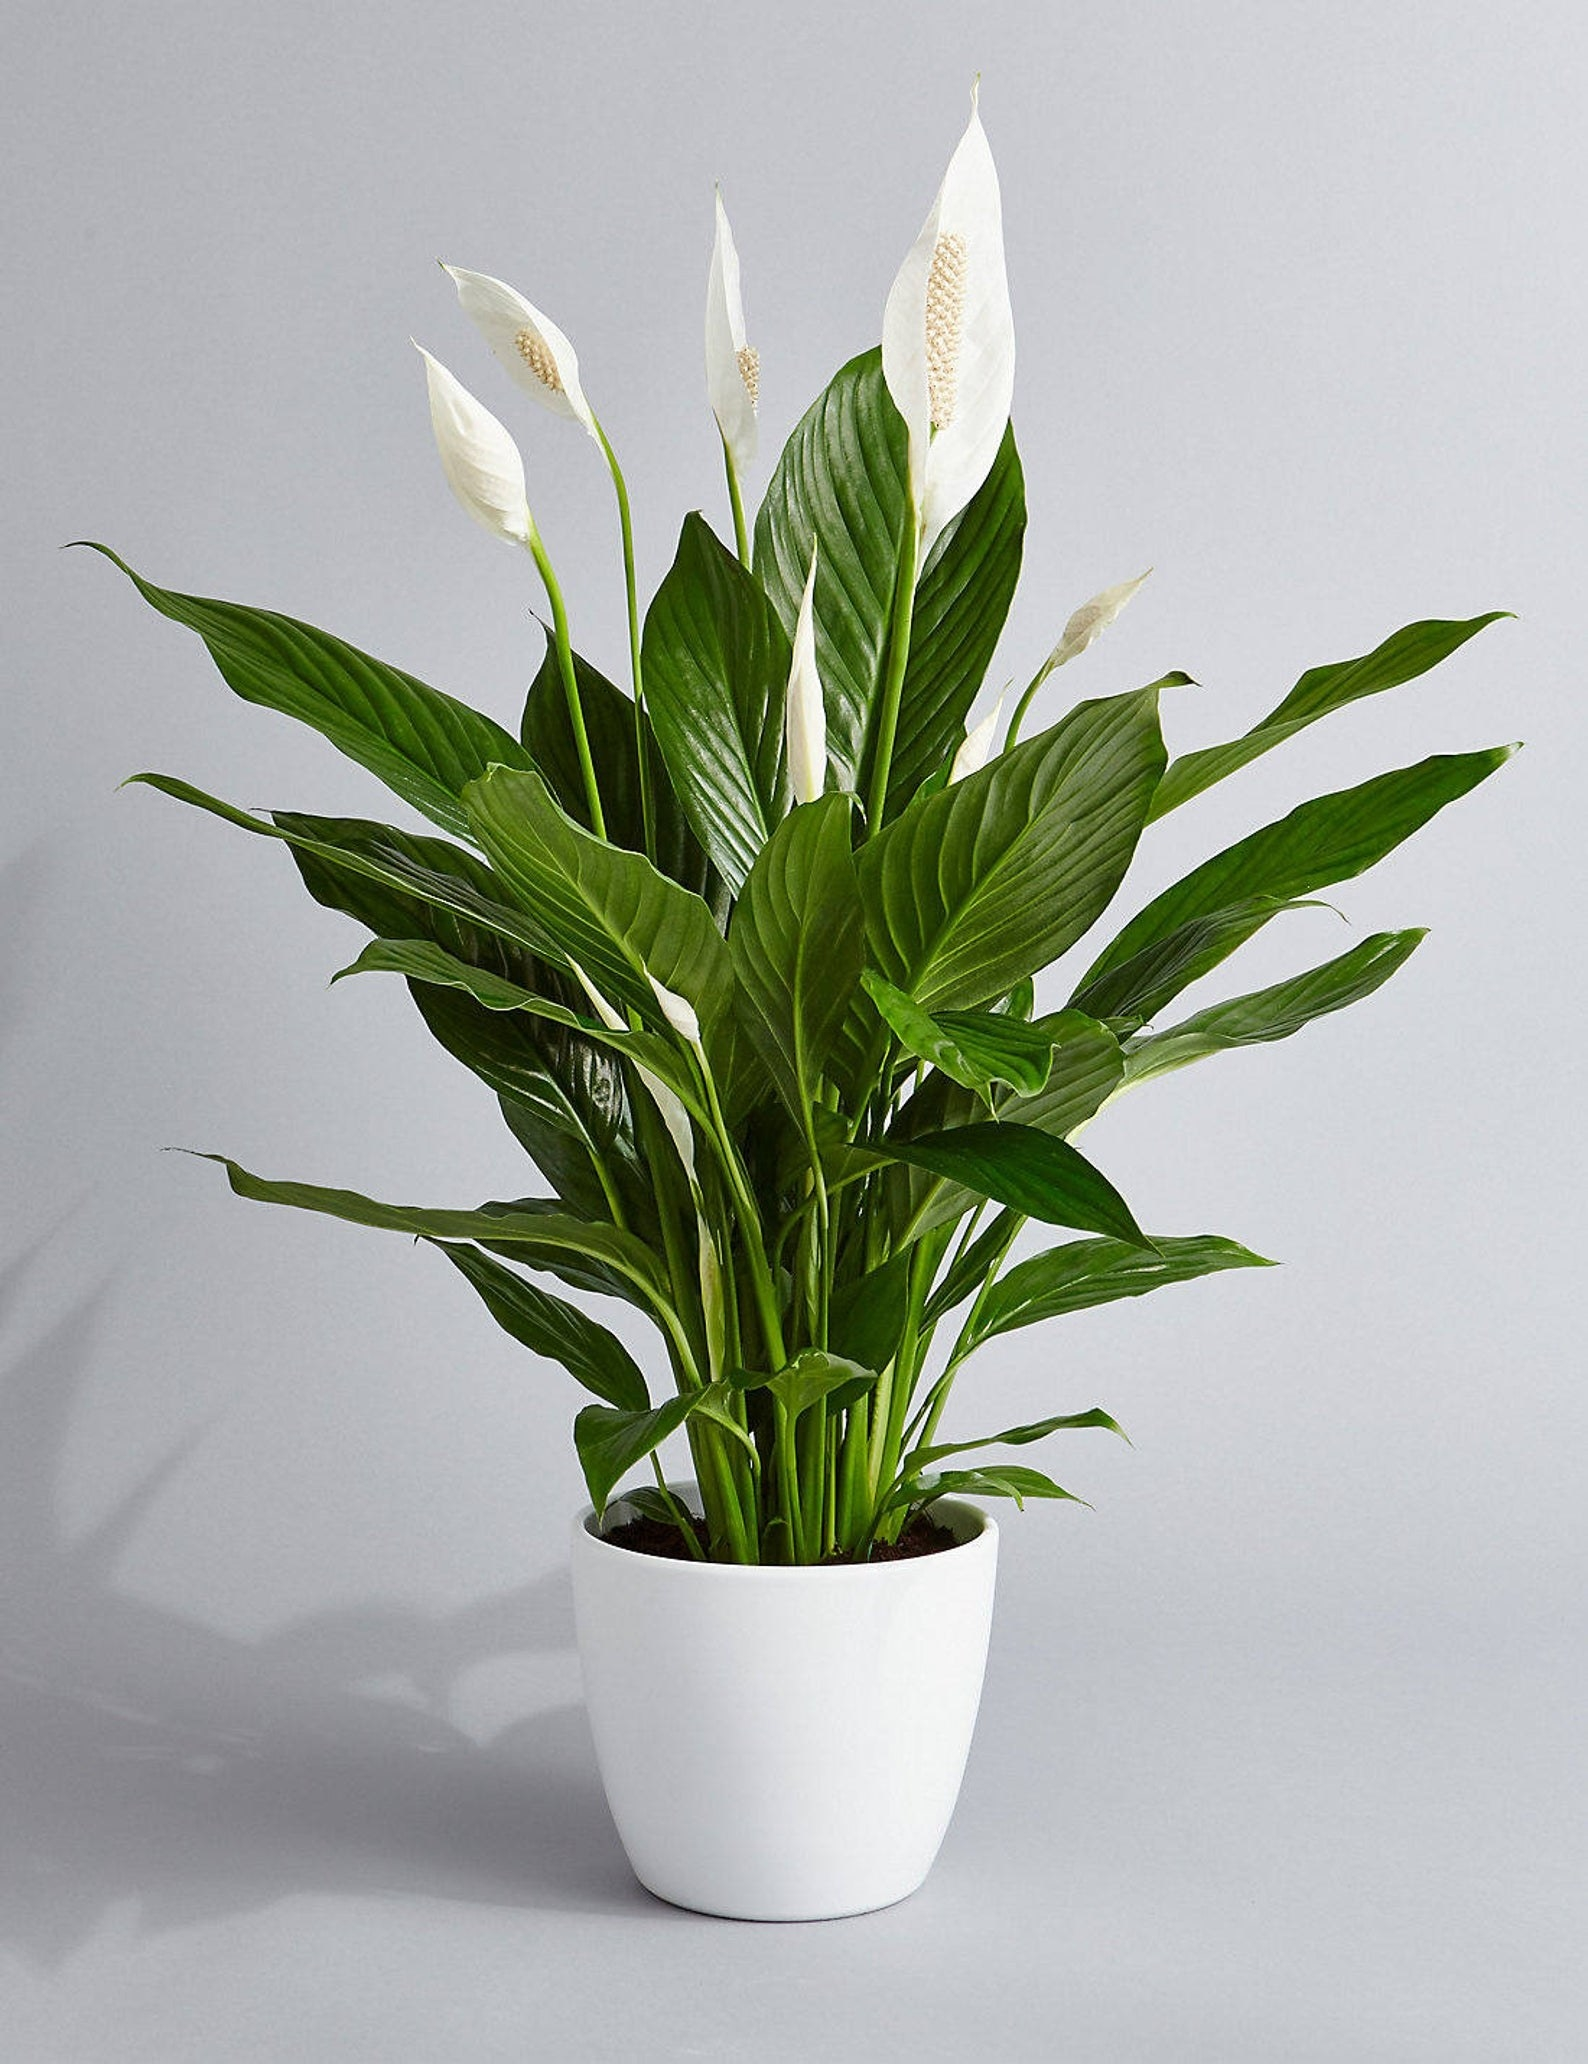 A large peace lily in a white pot